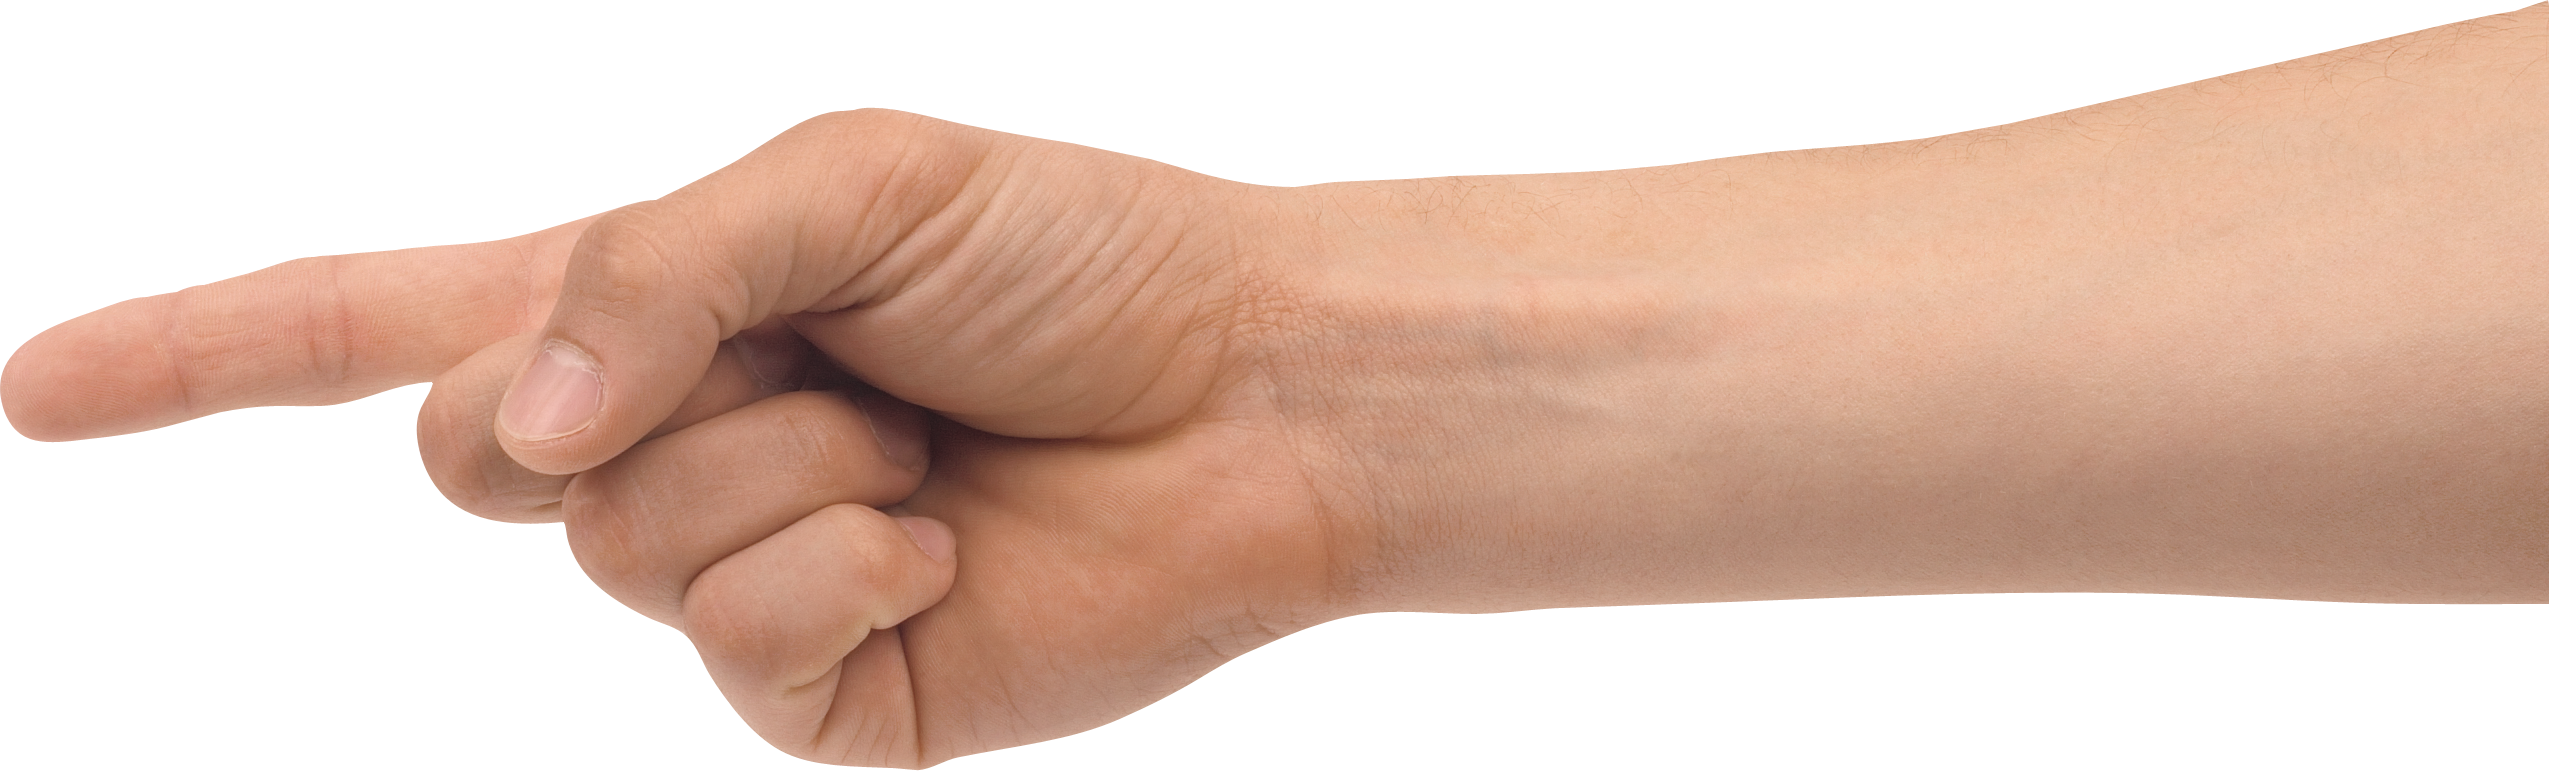 Hands png free images. Thumb clipart one